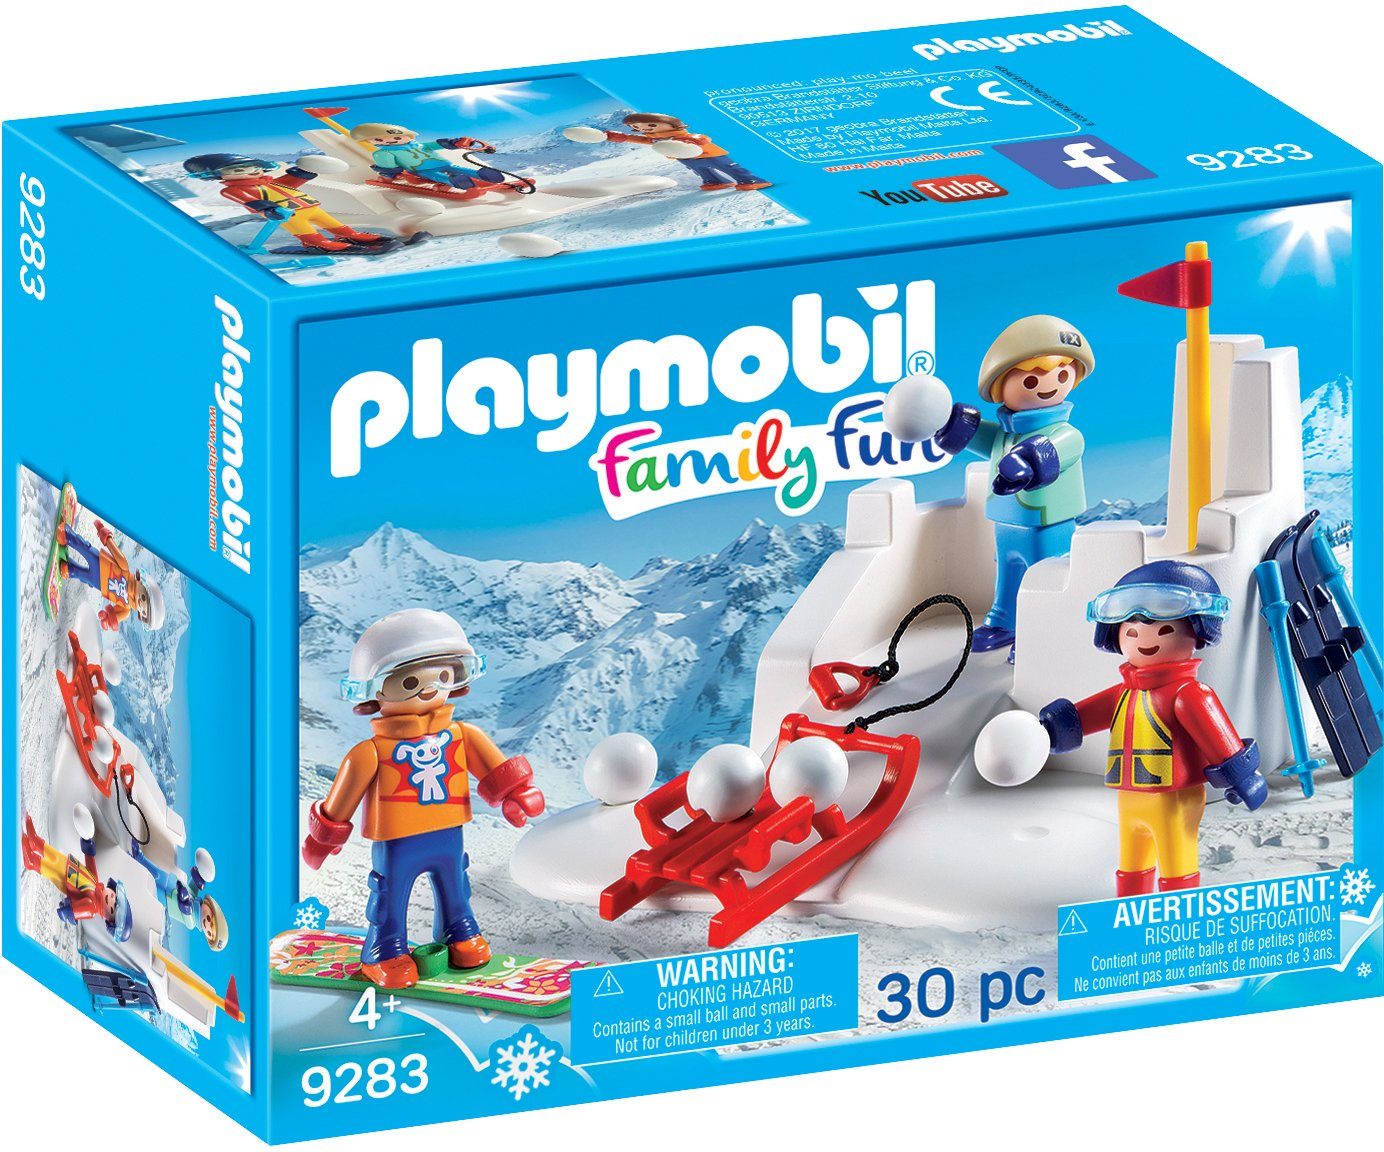 amazoncom playmobil snowball fight building set toys games - Playmobil Ski